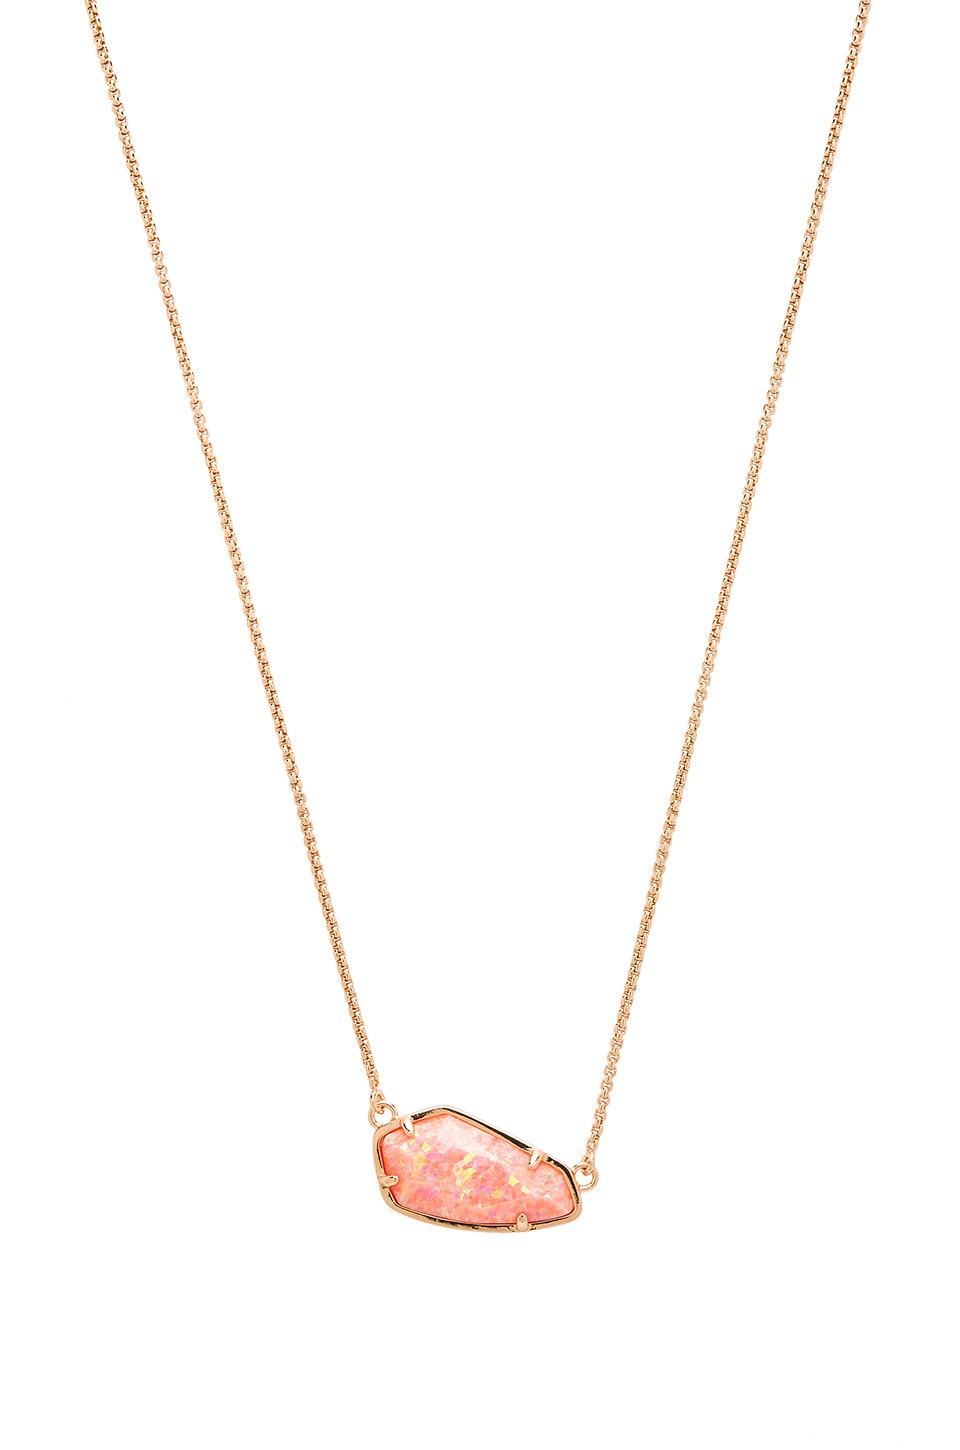 Kendra Scott Cami Necklace in Rose Gold & Coral Kyocera Opal